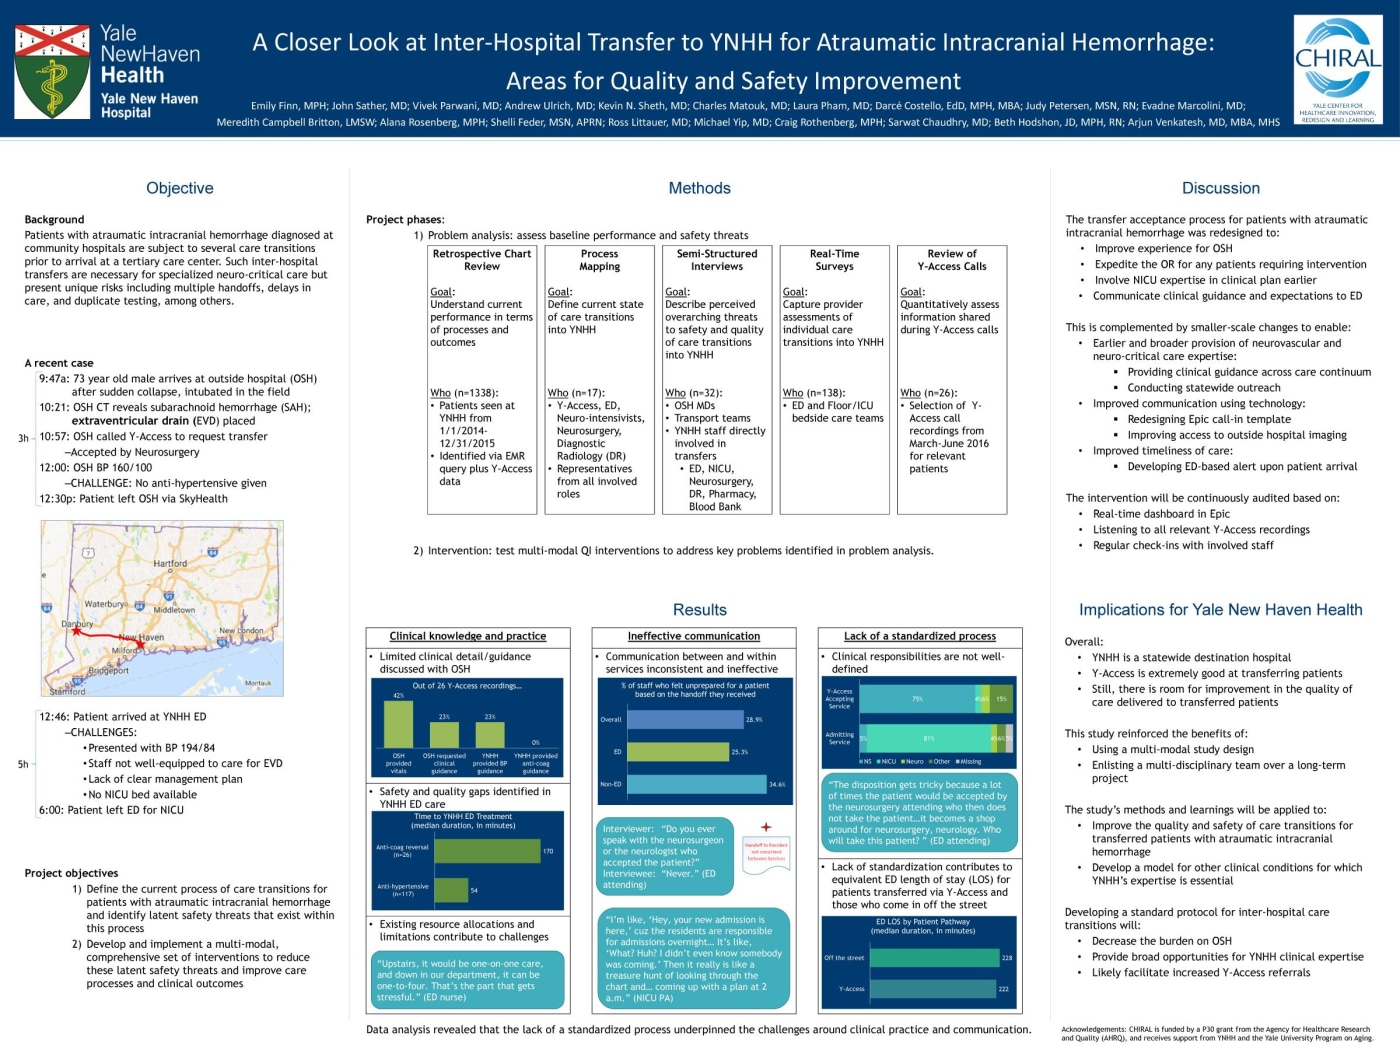 A Closer Look at Inter-Hospital Transfer to YNHH For Atraumatic Intracranial Hemorrhage: Areas for Quality and Safety Improvement